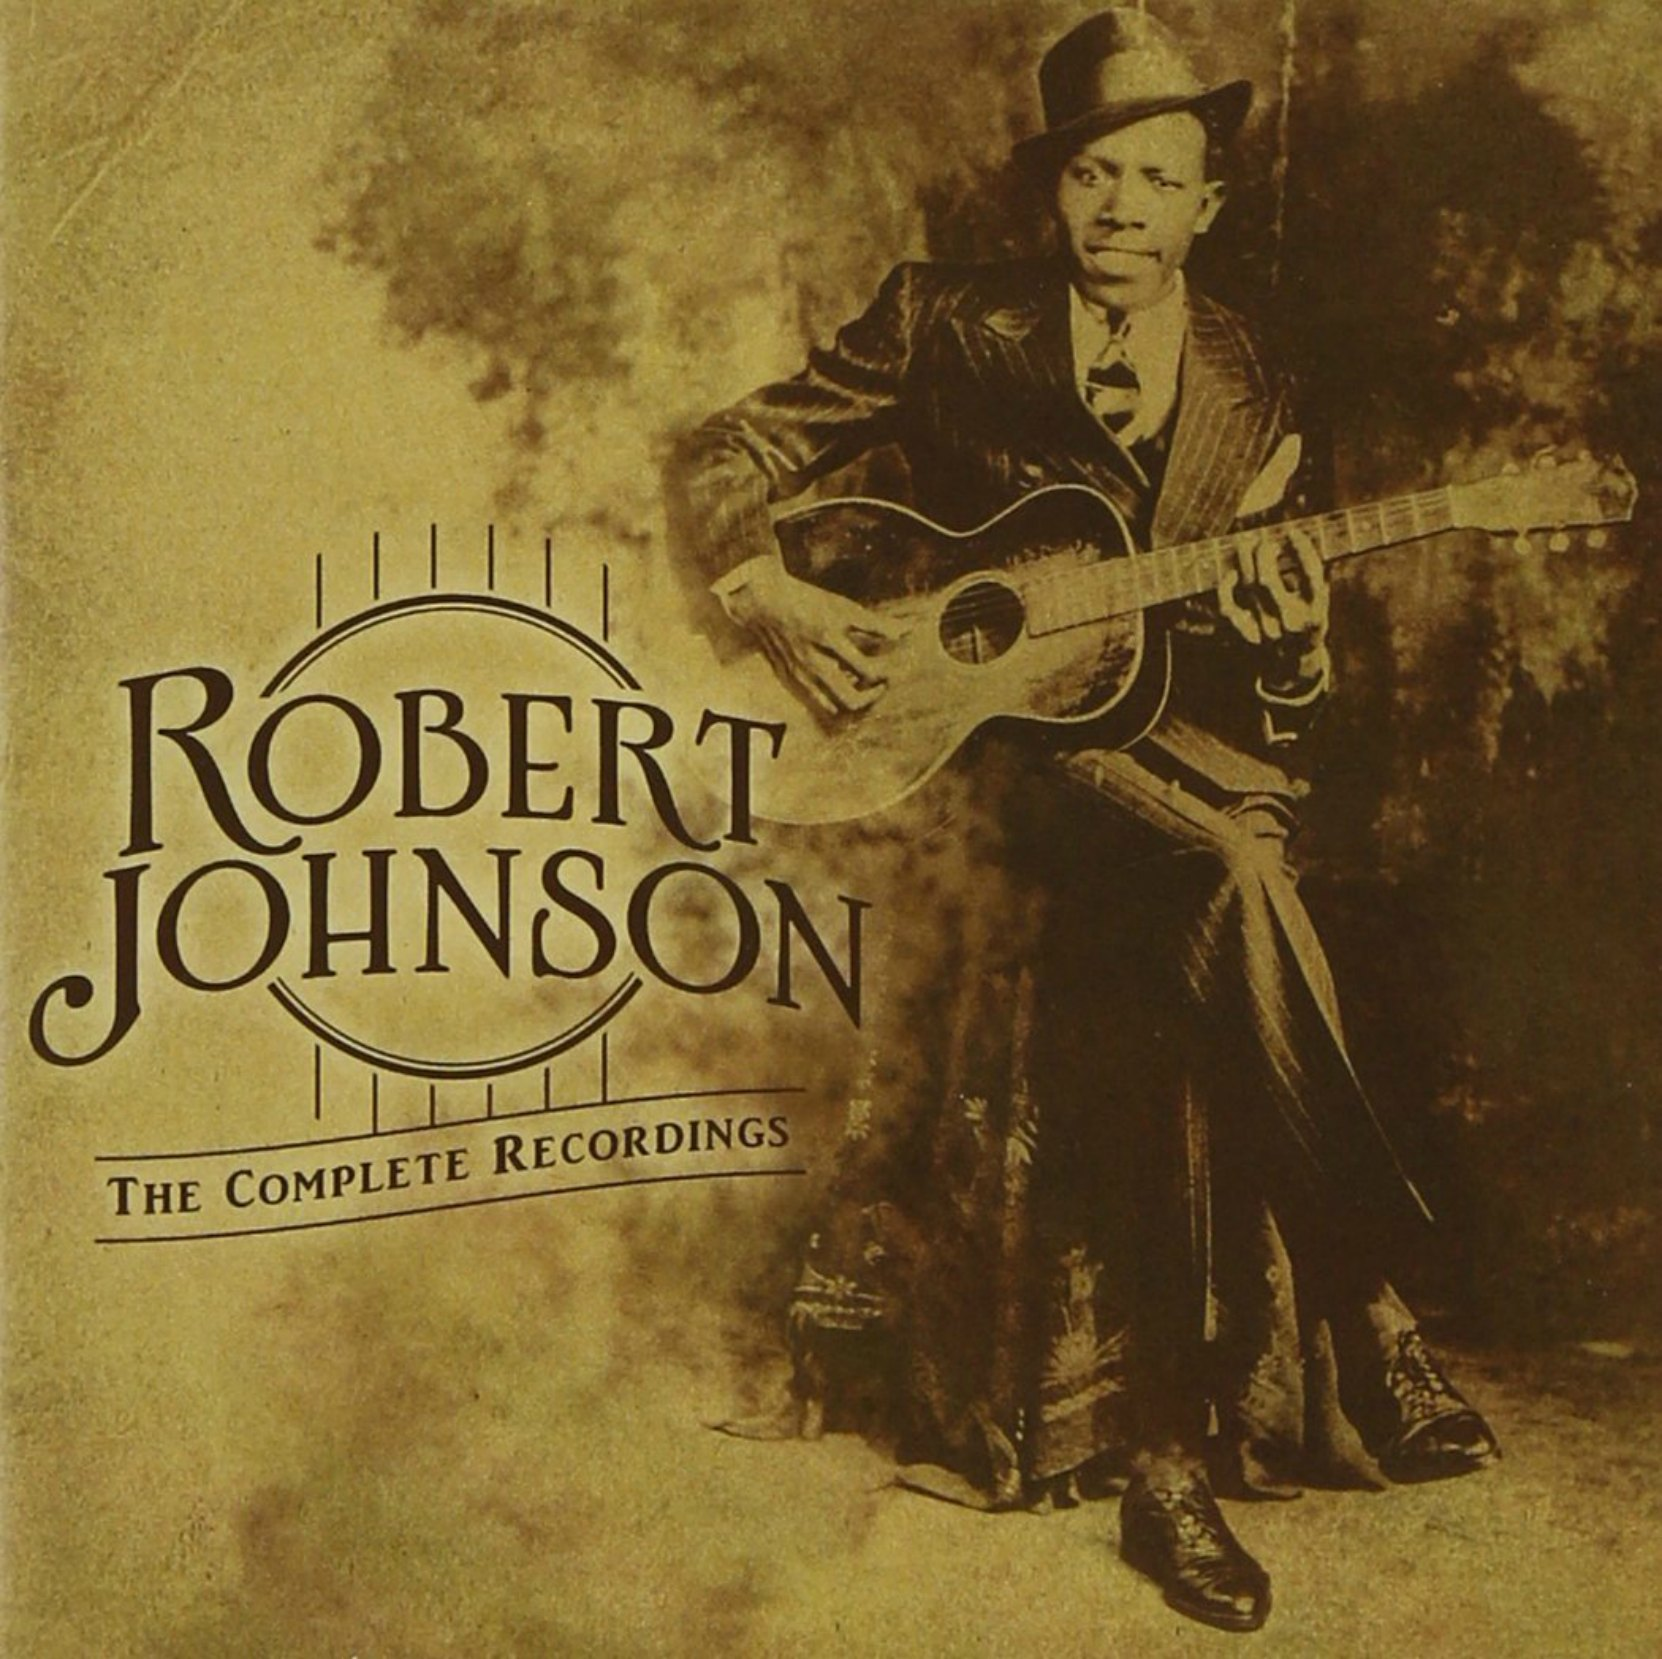 CD cover for Robert Johnson The Complete Recordings - Centennial Edition